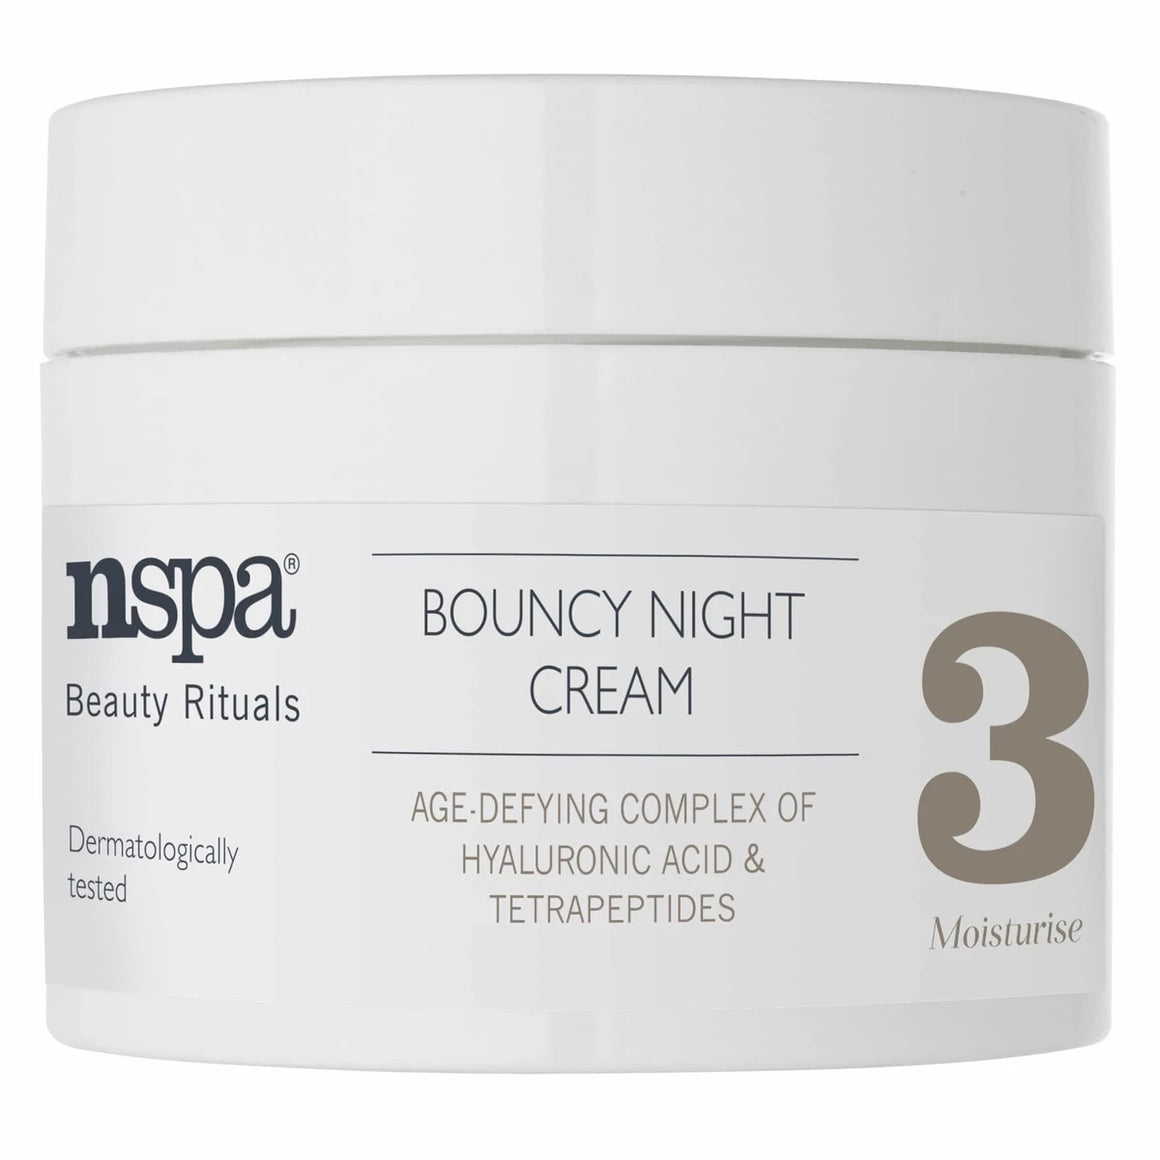 nspa Bouncy Night Cream-50ml at BD Budget Beauty (BBB)